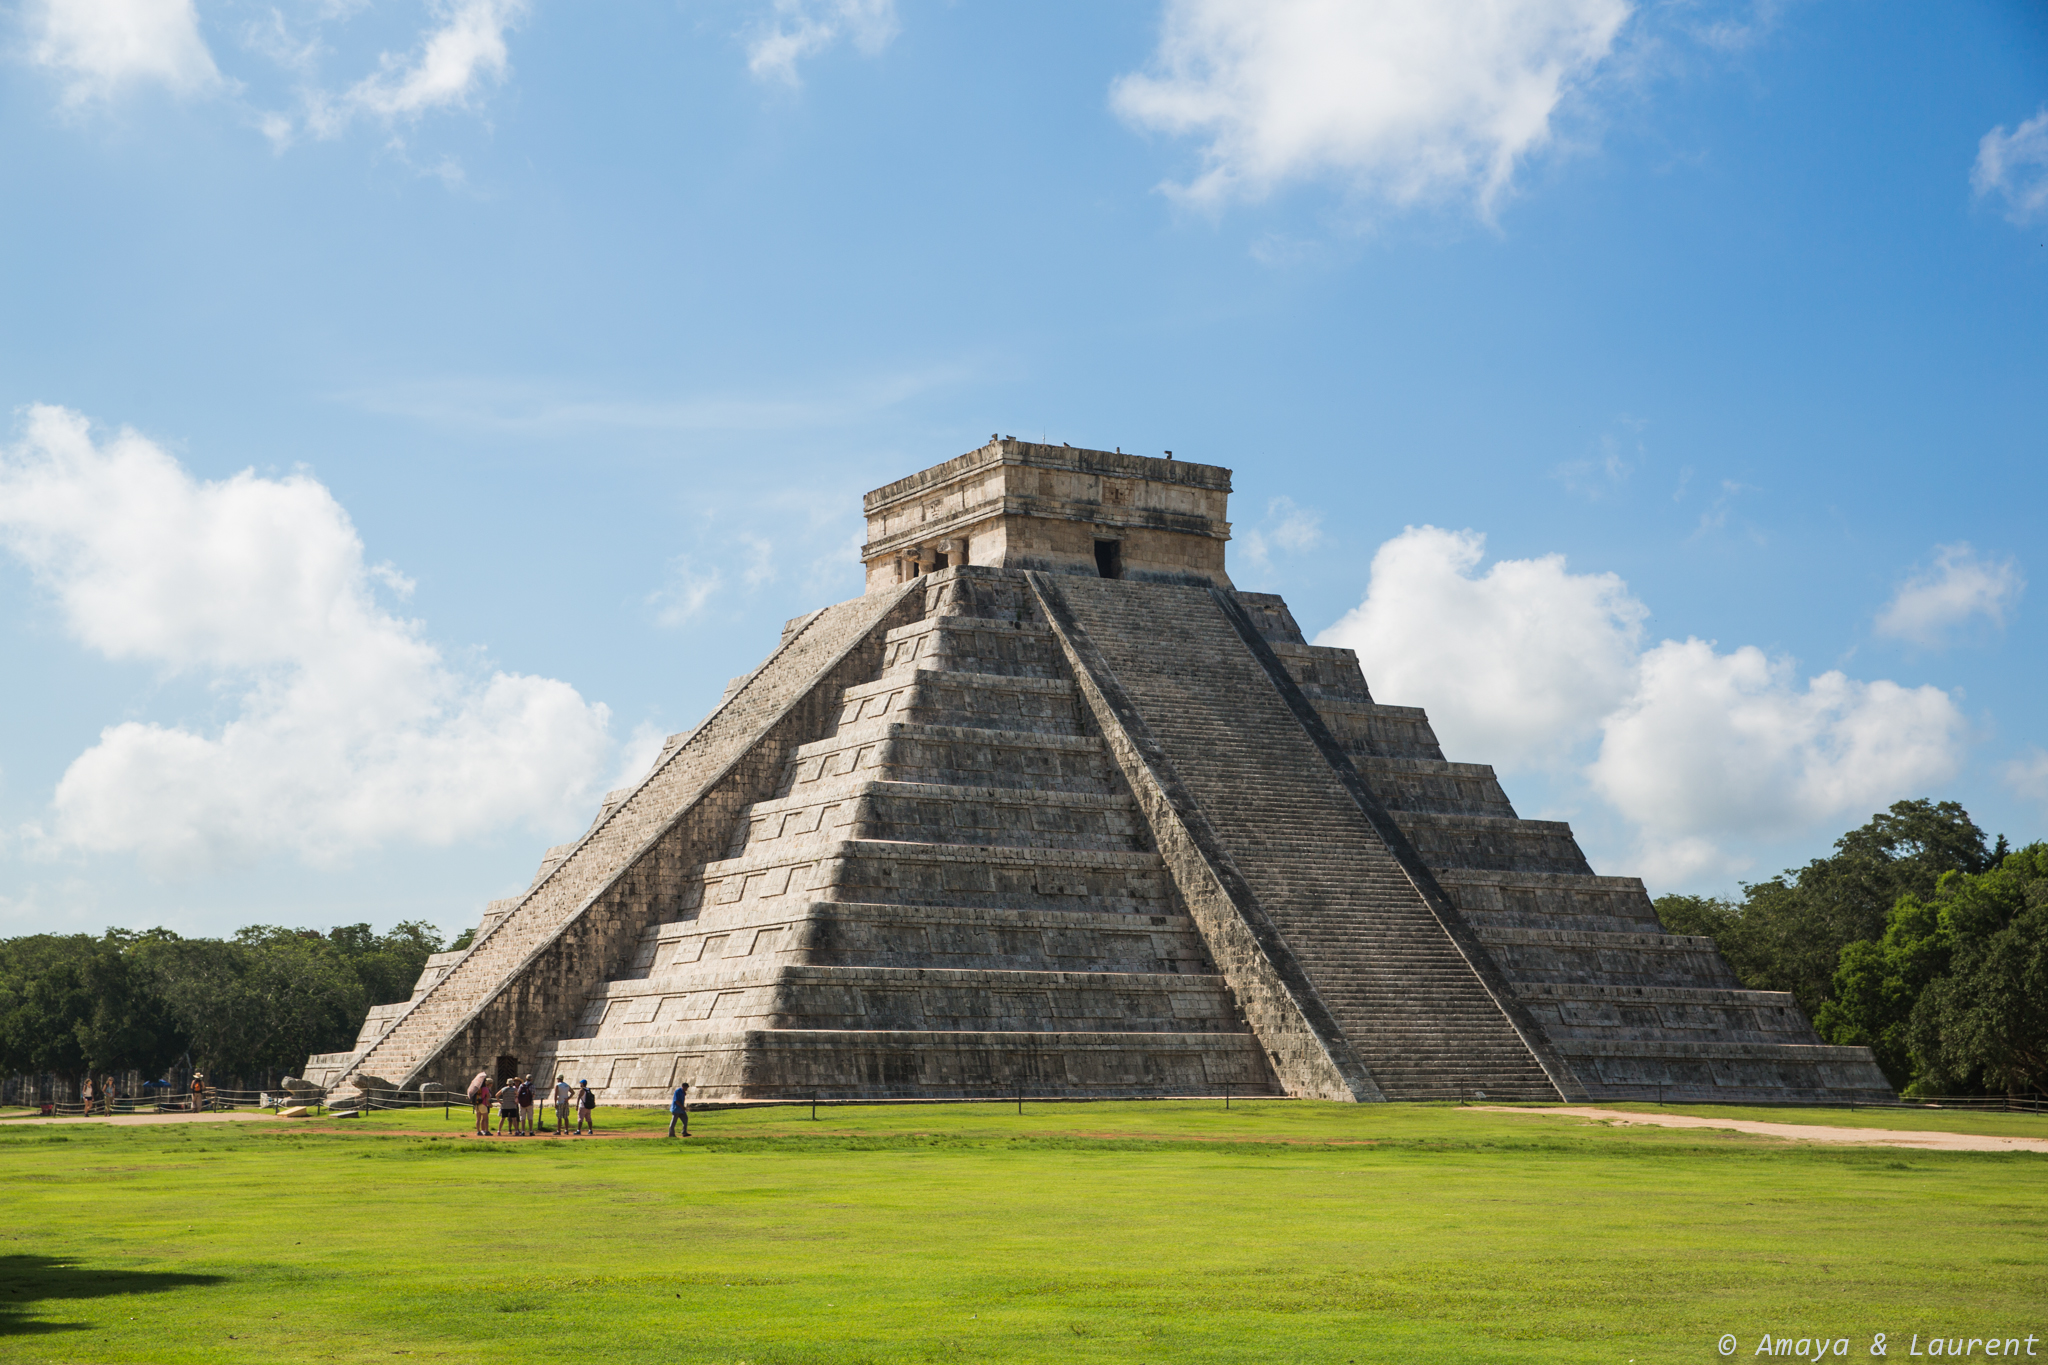 Mexique : Chichen Itza et Valladolid